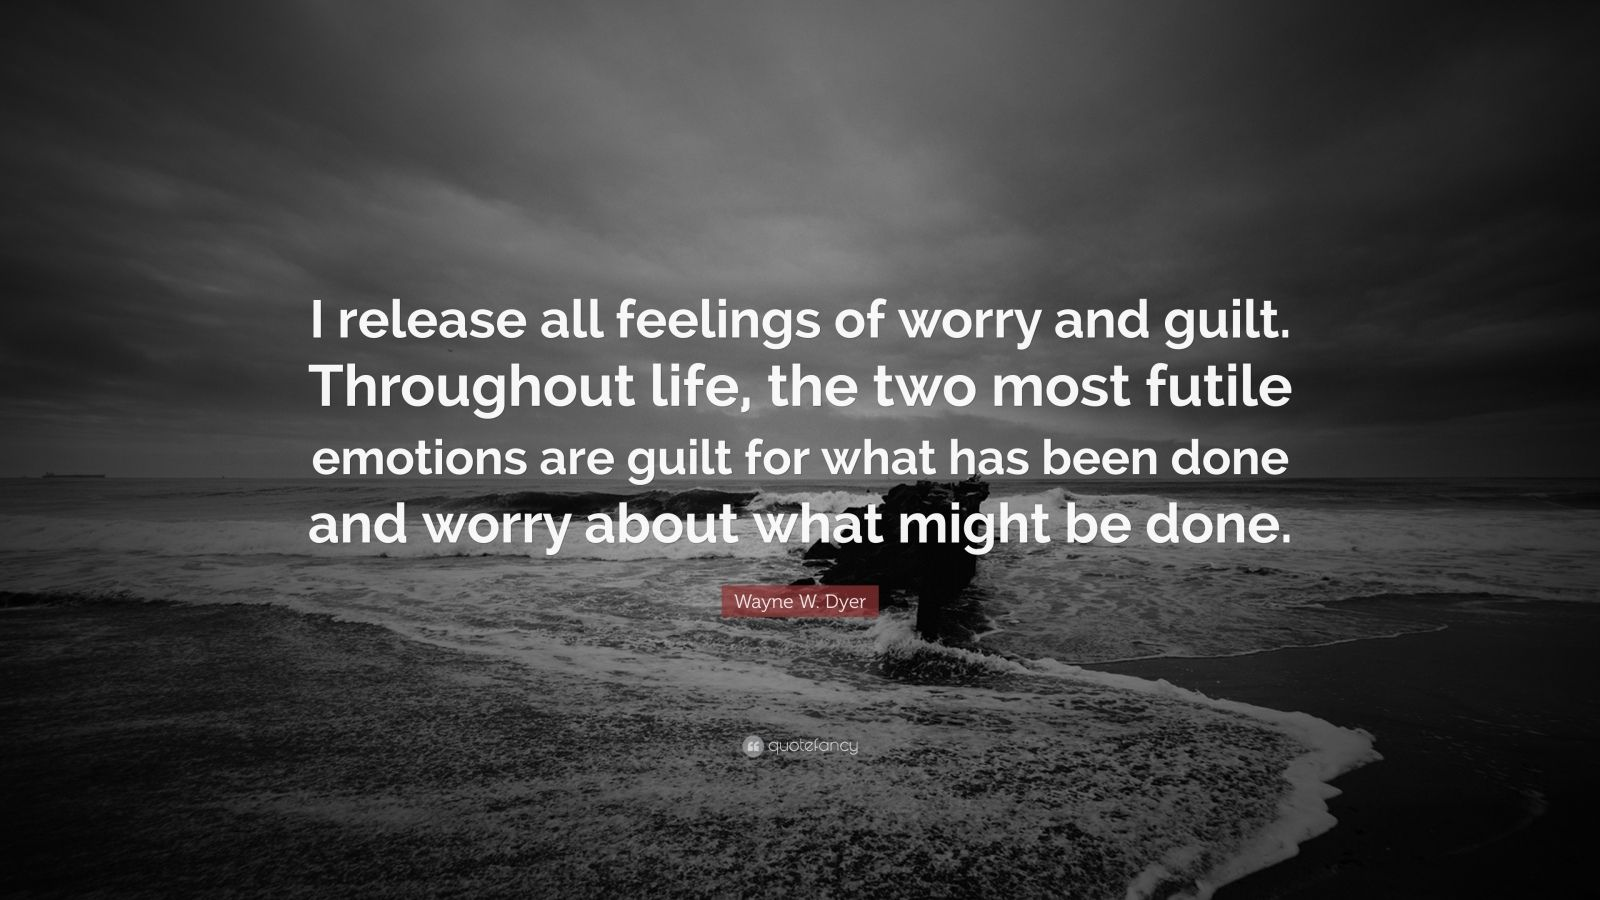 """Wayne W. Dyer Quote: """"I release all feelings of worry and guilt. Throughout life, the two most futile emotions are guilt for what has been done and worry about what might be done."""""""